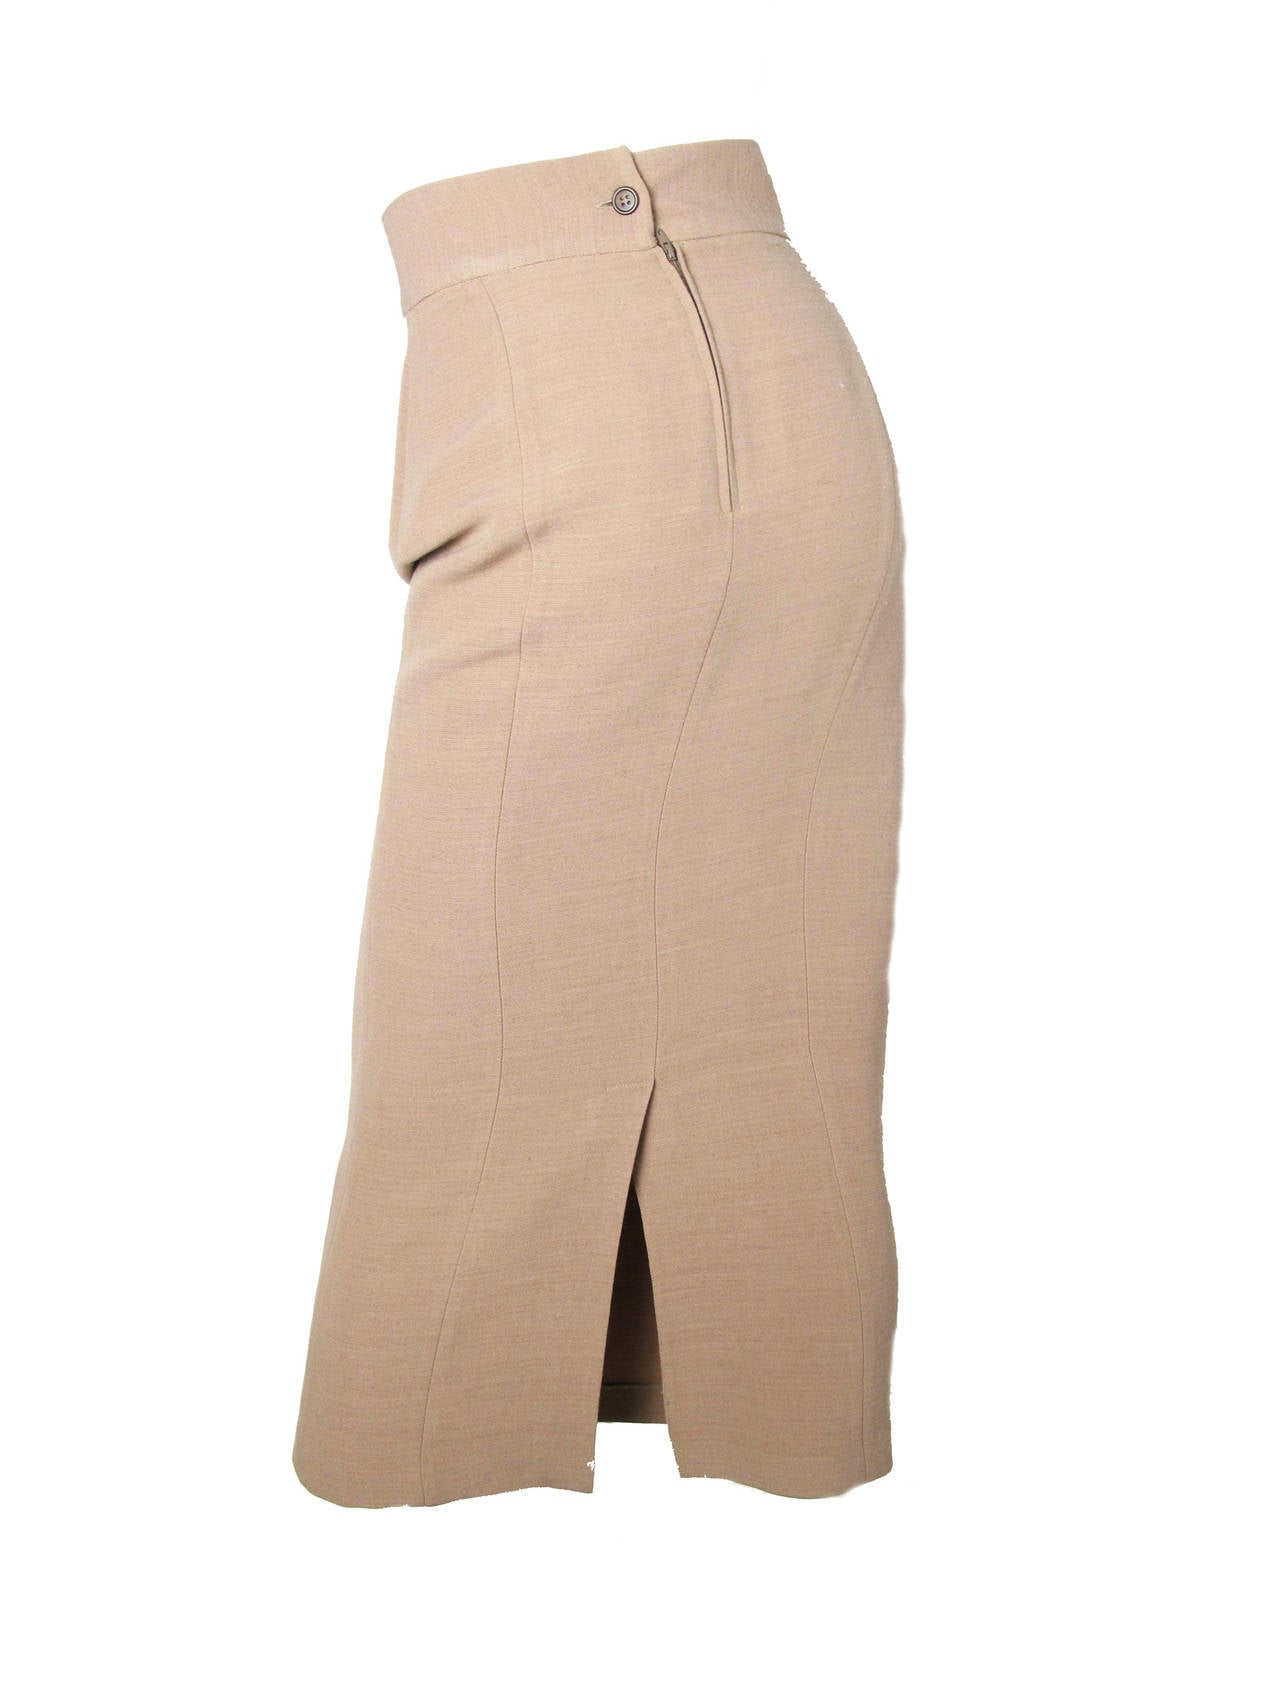 dolce and gabbana pale taupe pencil skirt at 1stdibs